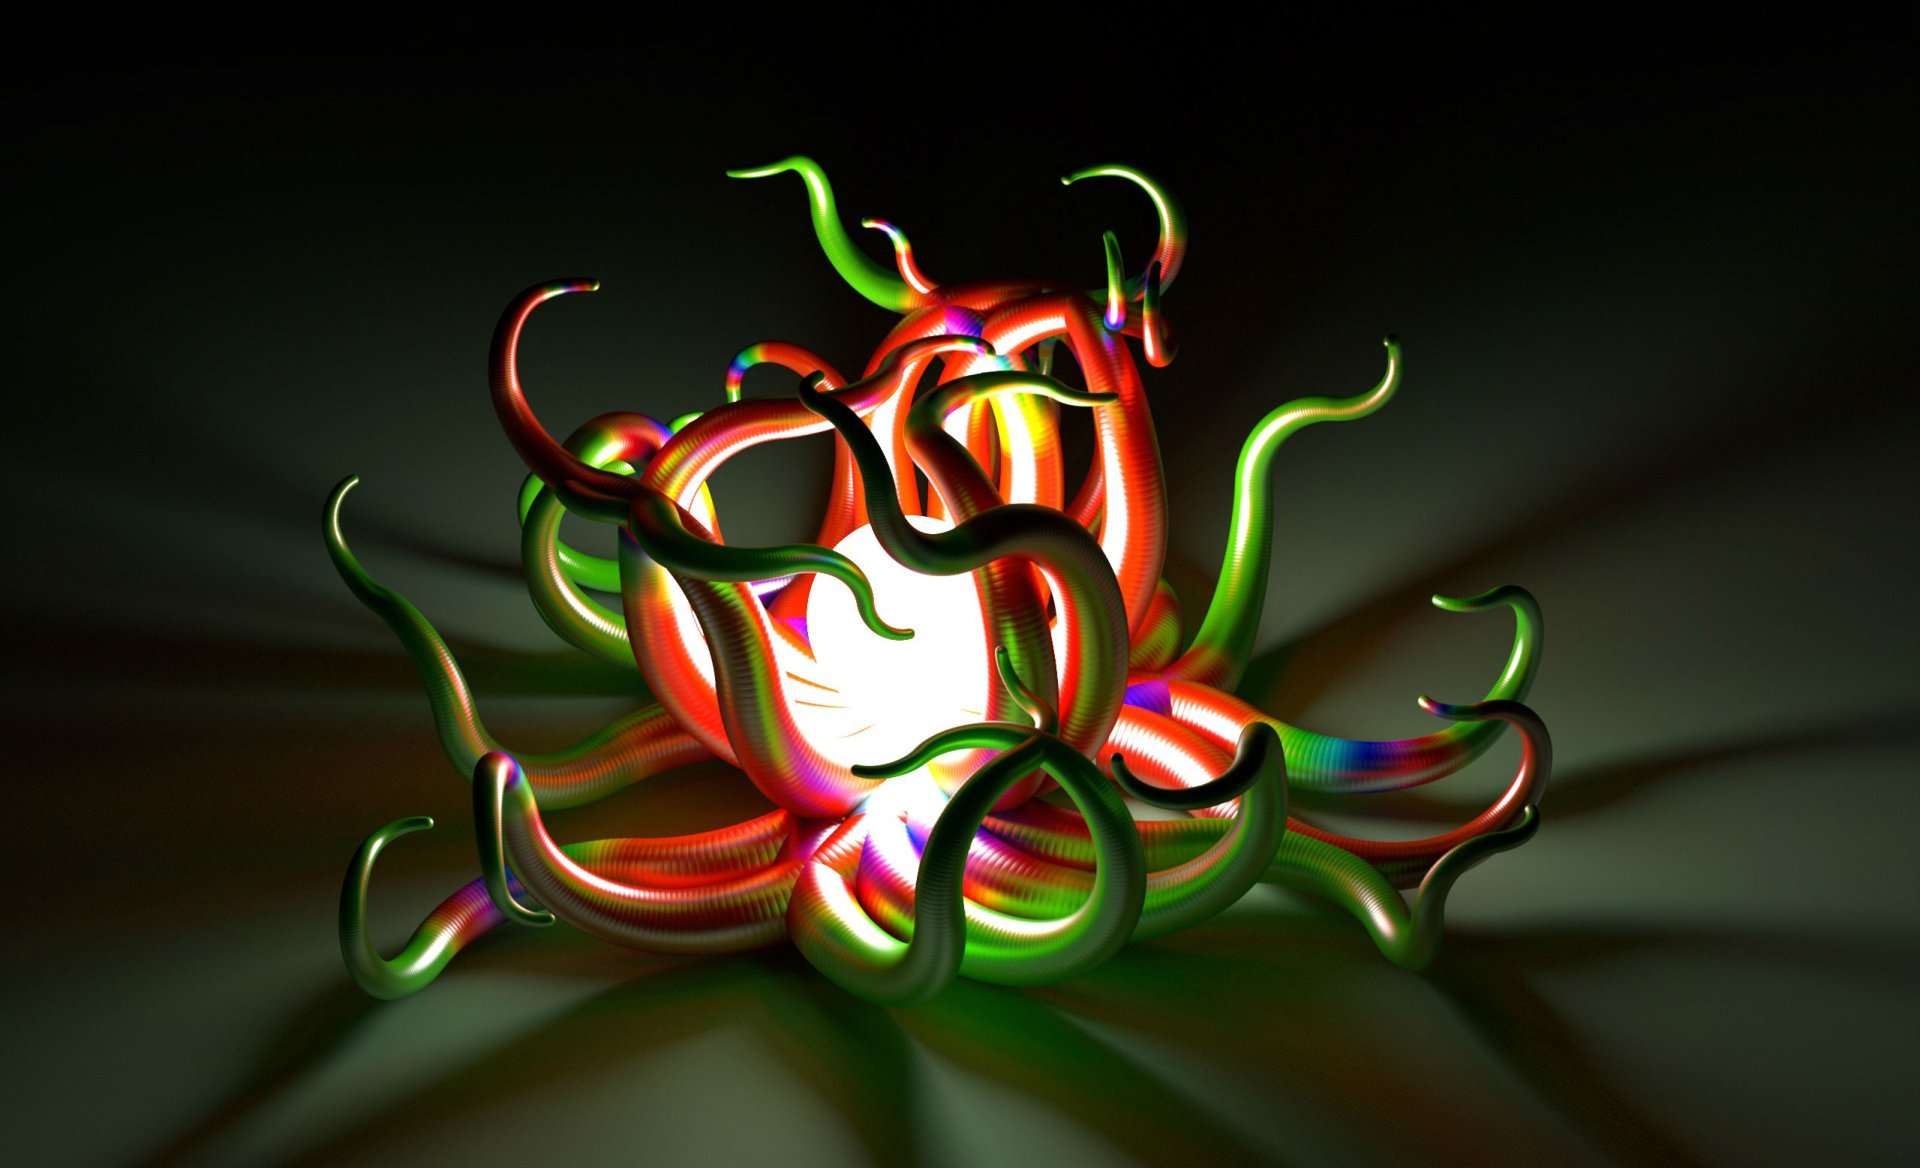 CGI - 3D  Digital Abstract CGI Wallpaper